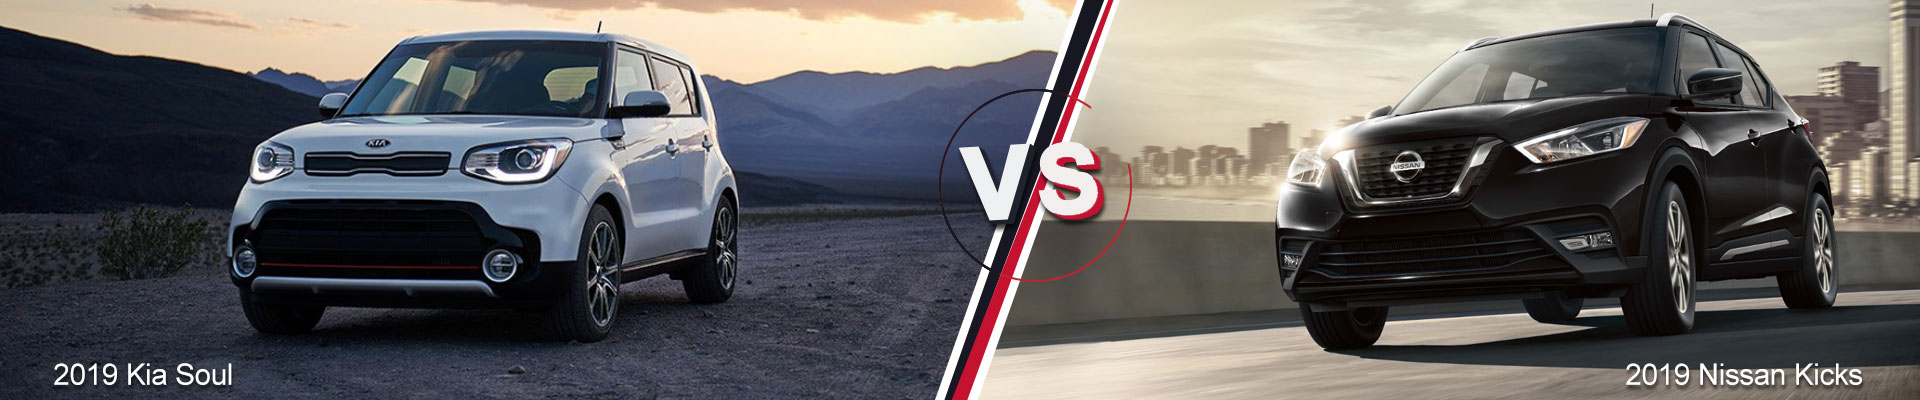 2019 Kia Soul VS. 2019 Nissan Kicks Kia of Duluth